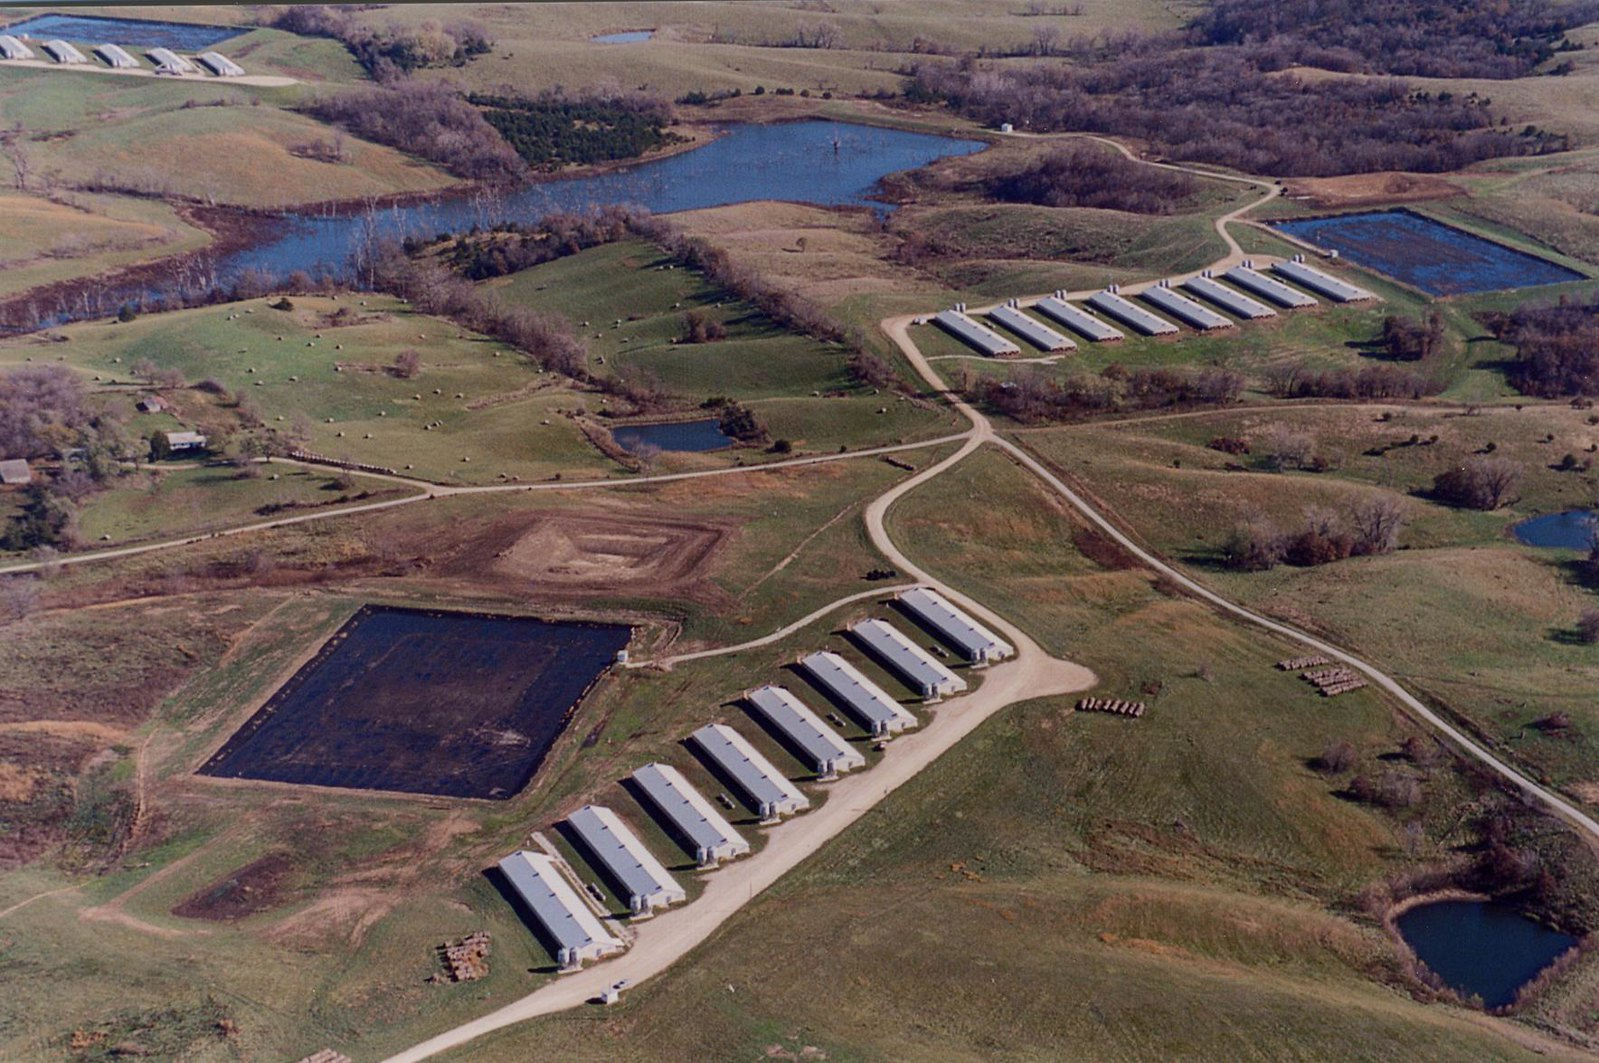 Aerial View of a factory farm